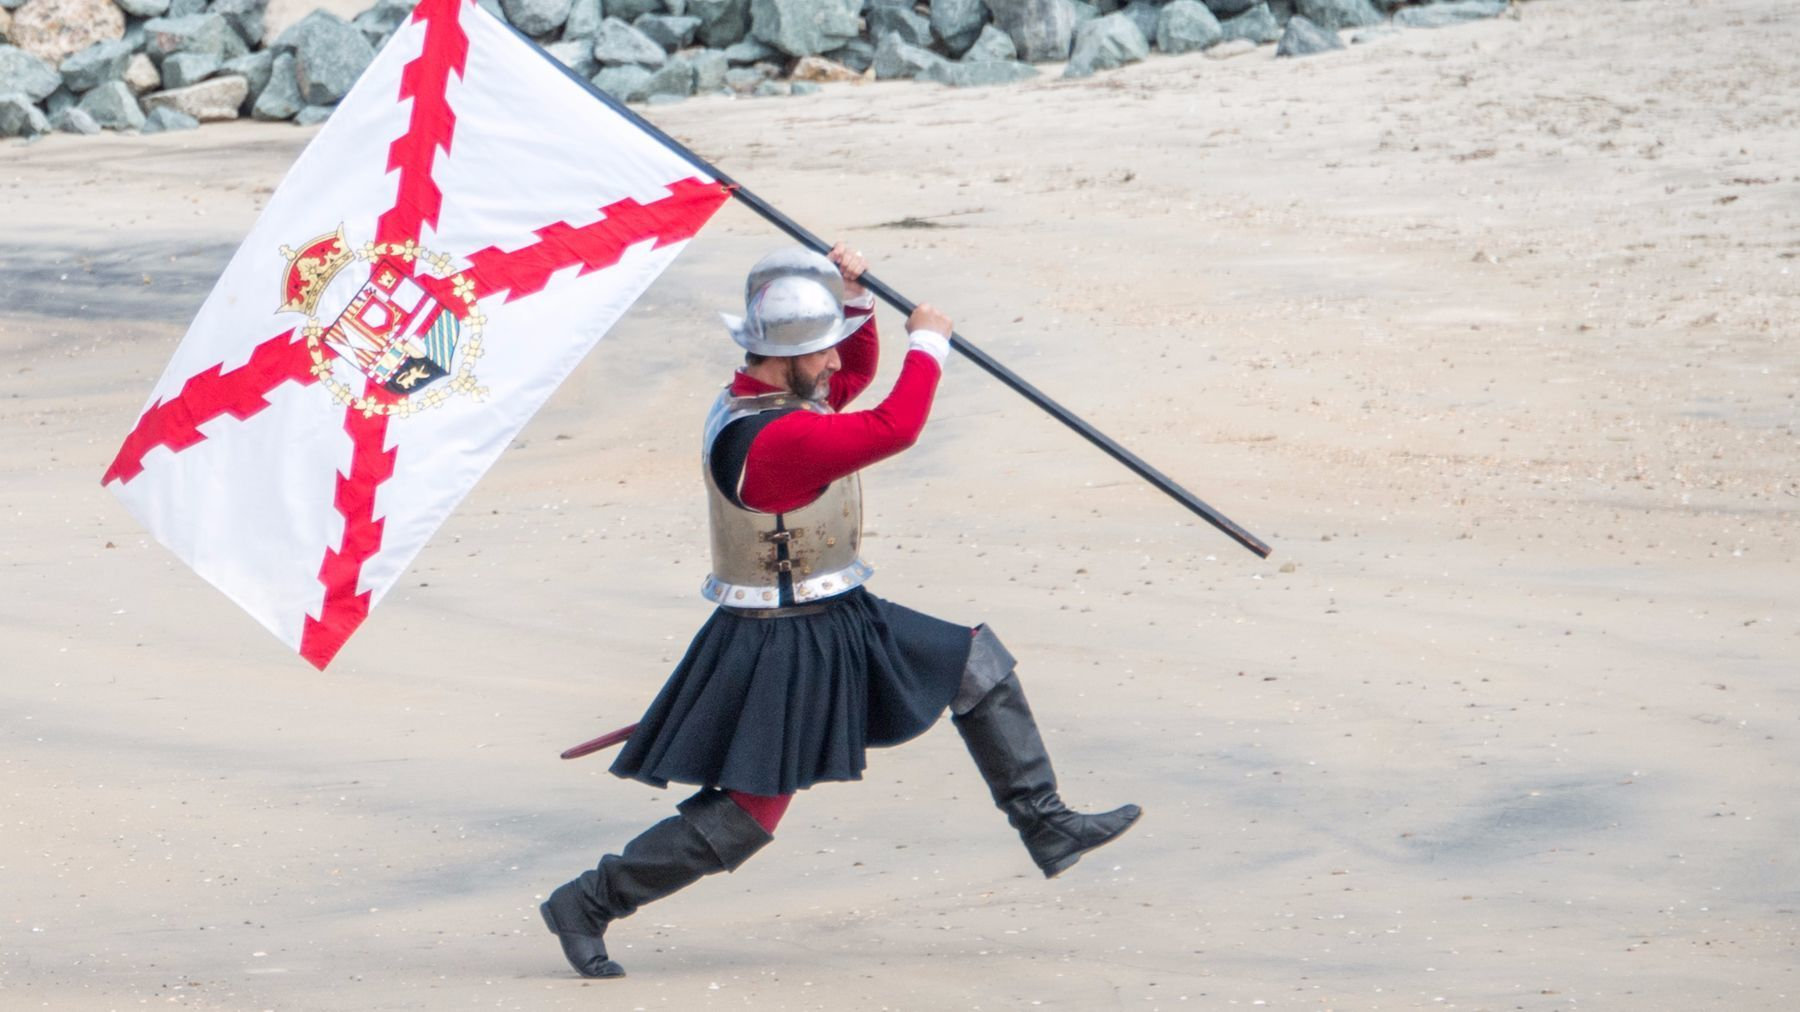 Cabrillo re-enactor claiming the land in the name of Spain